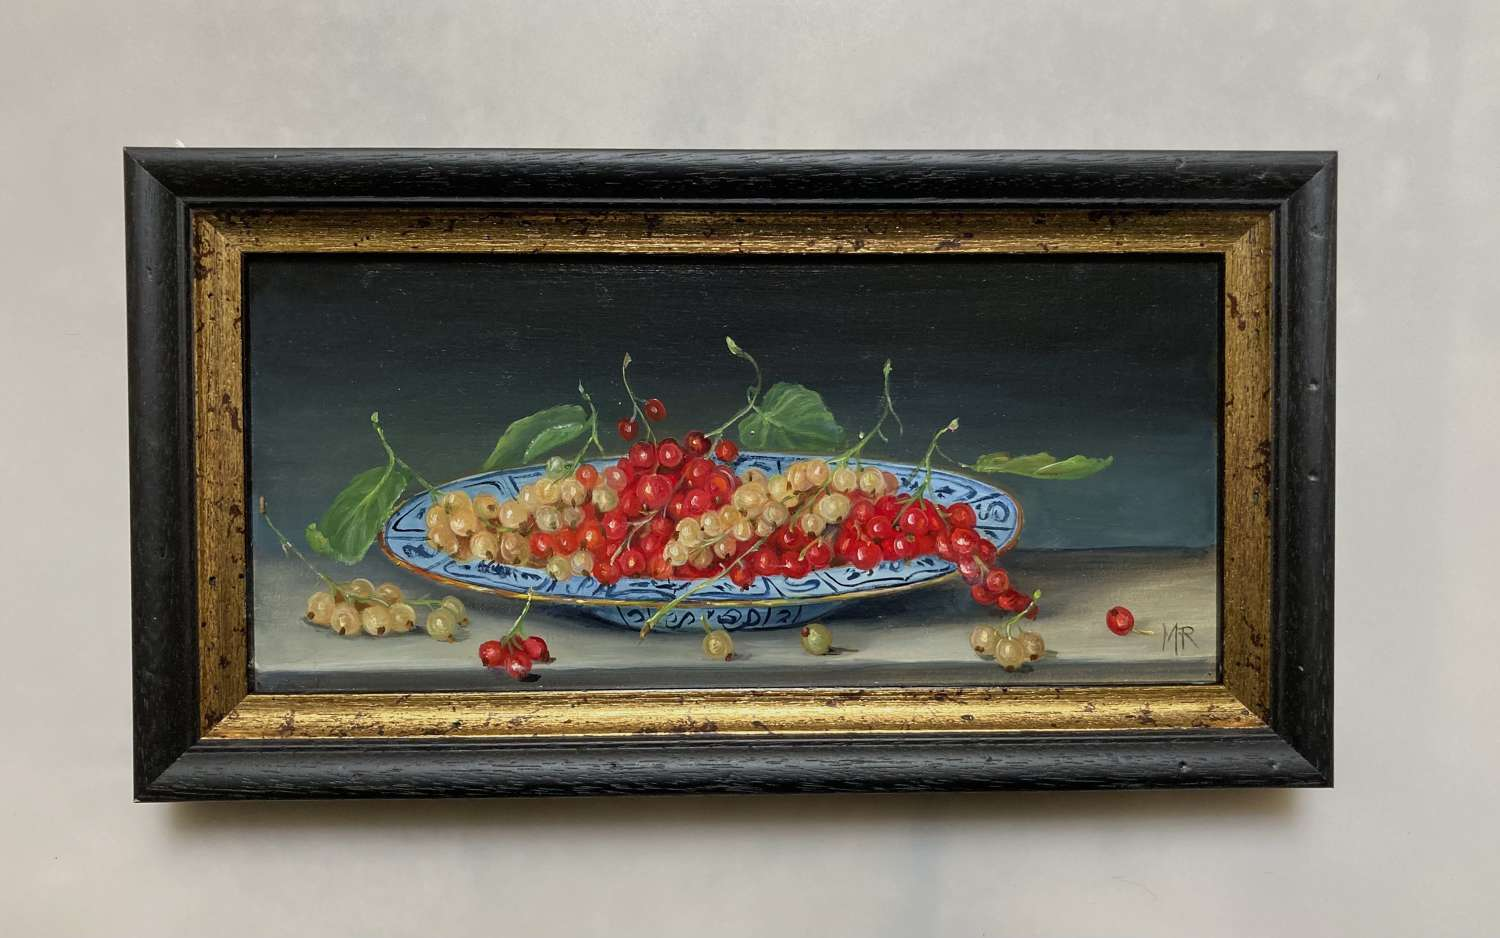 Red and white currants on a plate